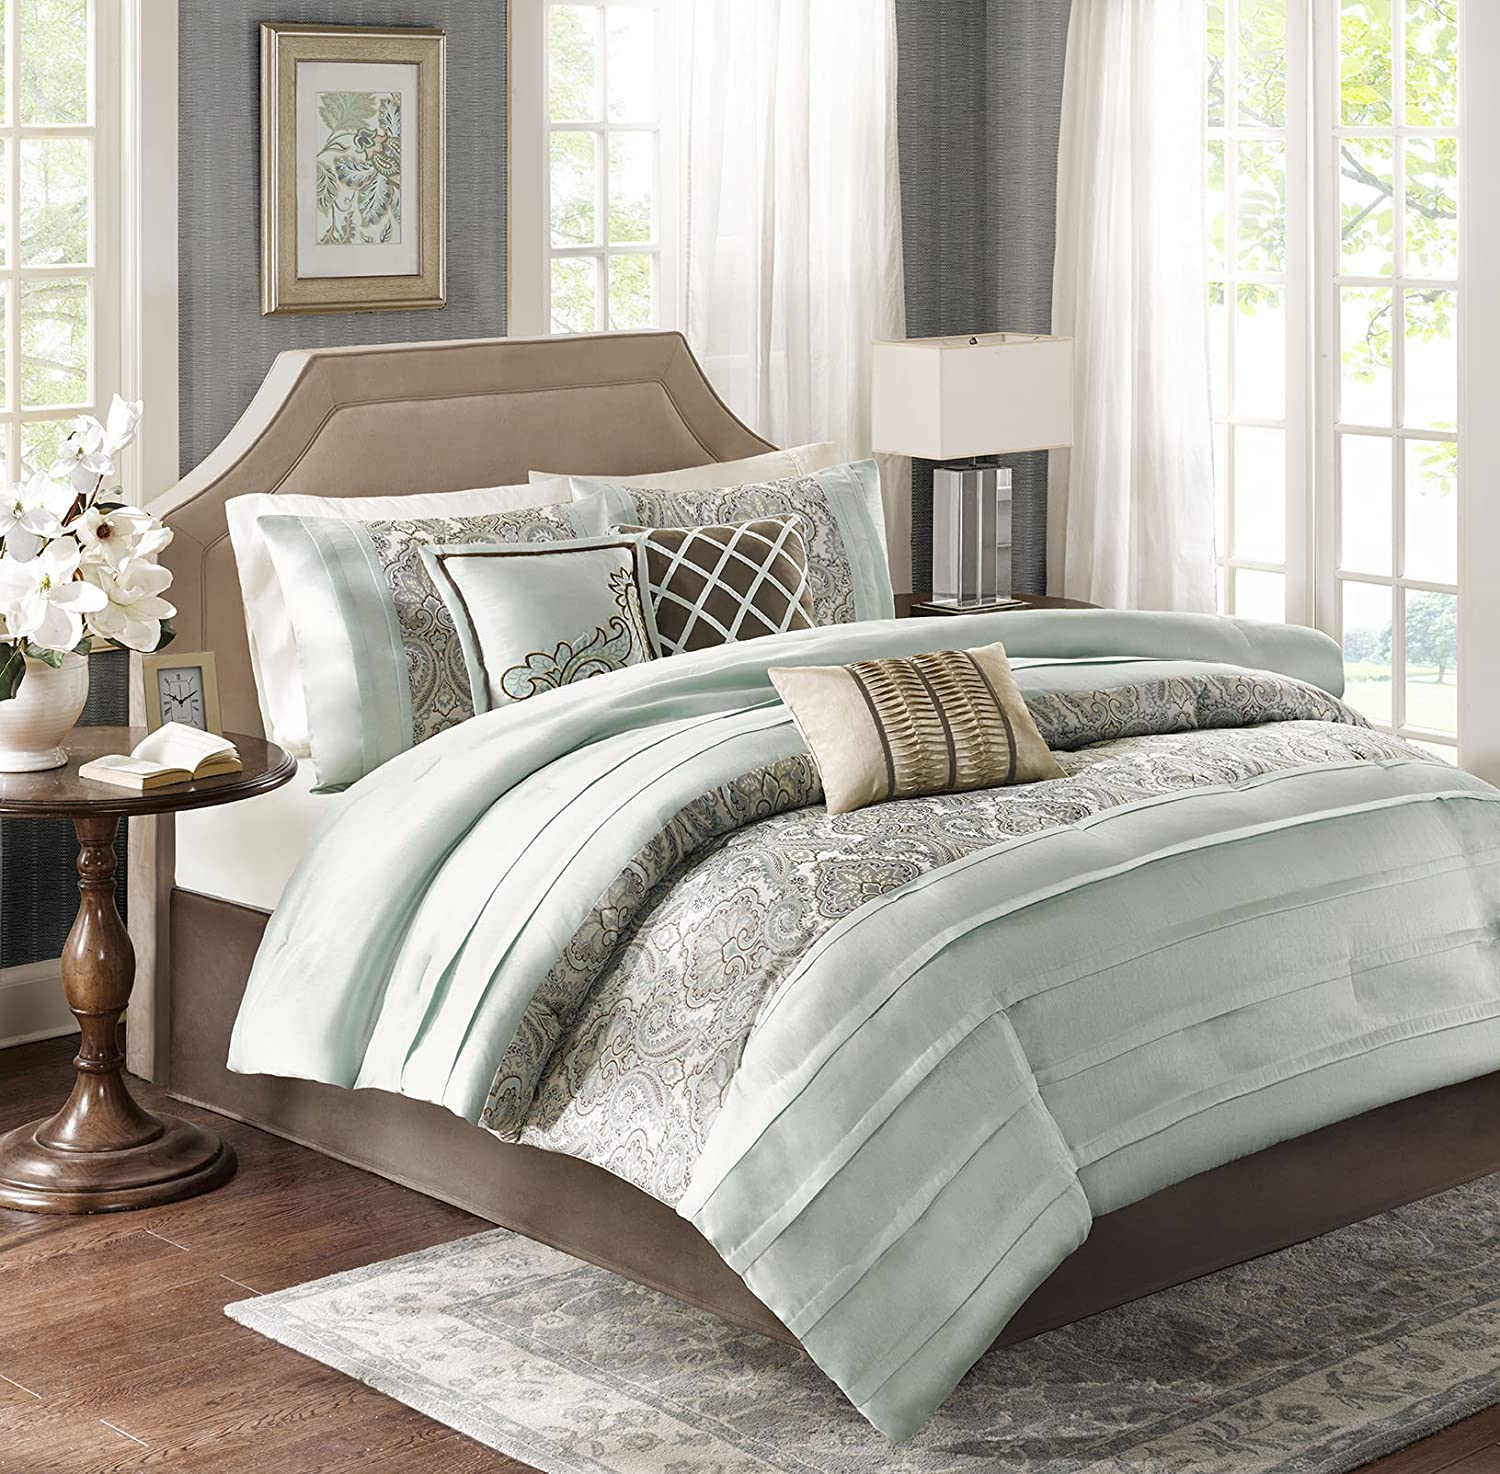 Beau Amazon.com: Madison Park Bryant Queen Size Bed Comforter Set Bed In A Bag    Aqua, Jacquard Paisley Demask U2013 7 Pieces Bedding Sets U2013 Faux Silk Bedroom  ...